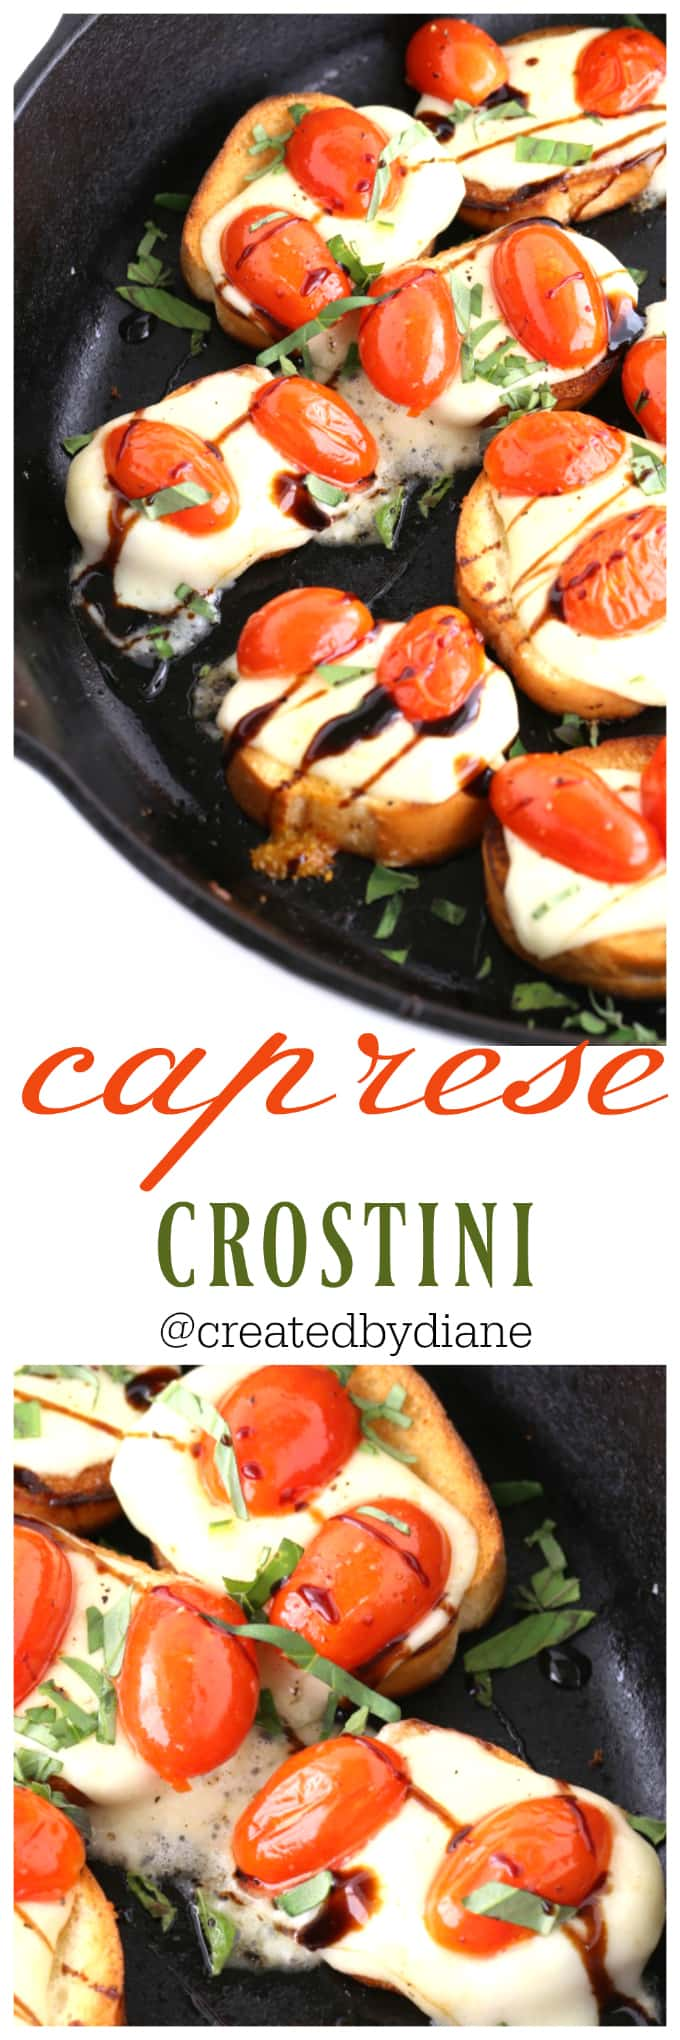 caprese crostini appetizer from @createdbydiane